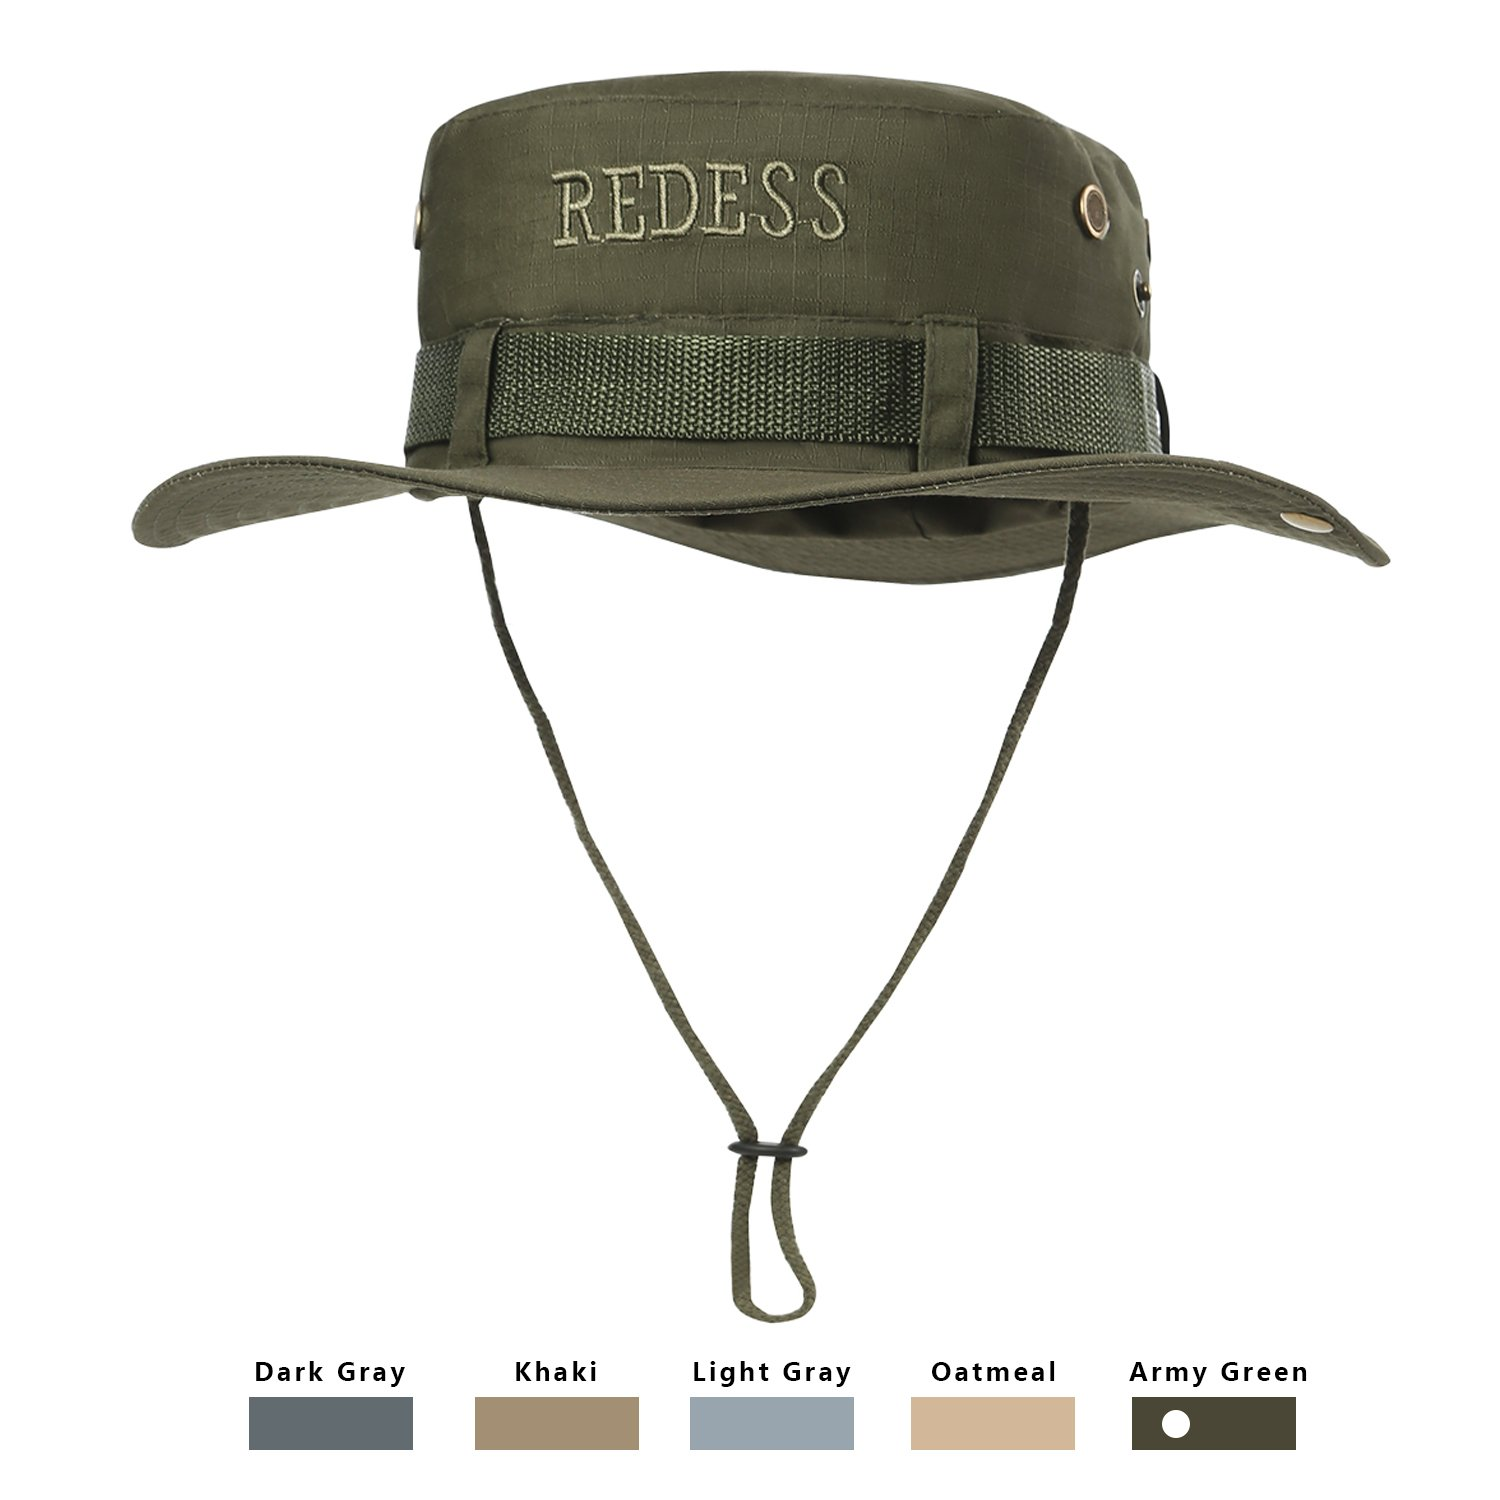 3292d7886d614 REDESS Waterproof Boonie Sun Fishing Hat Outdoor UPF 50 Protection UV  Protection Hat for Men   Women With Adjustable Chin Strap   Breathable for  Hiking